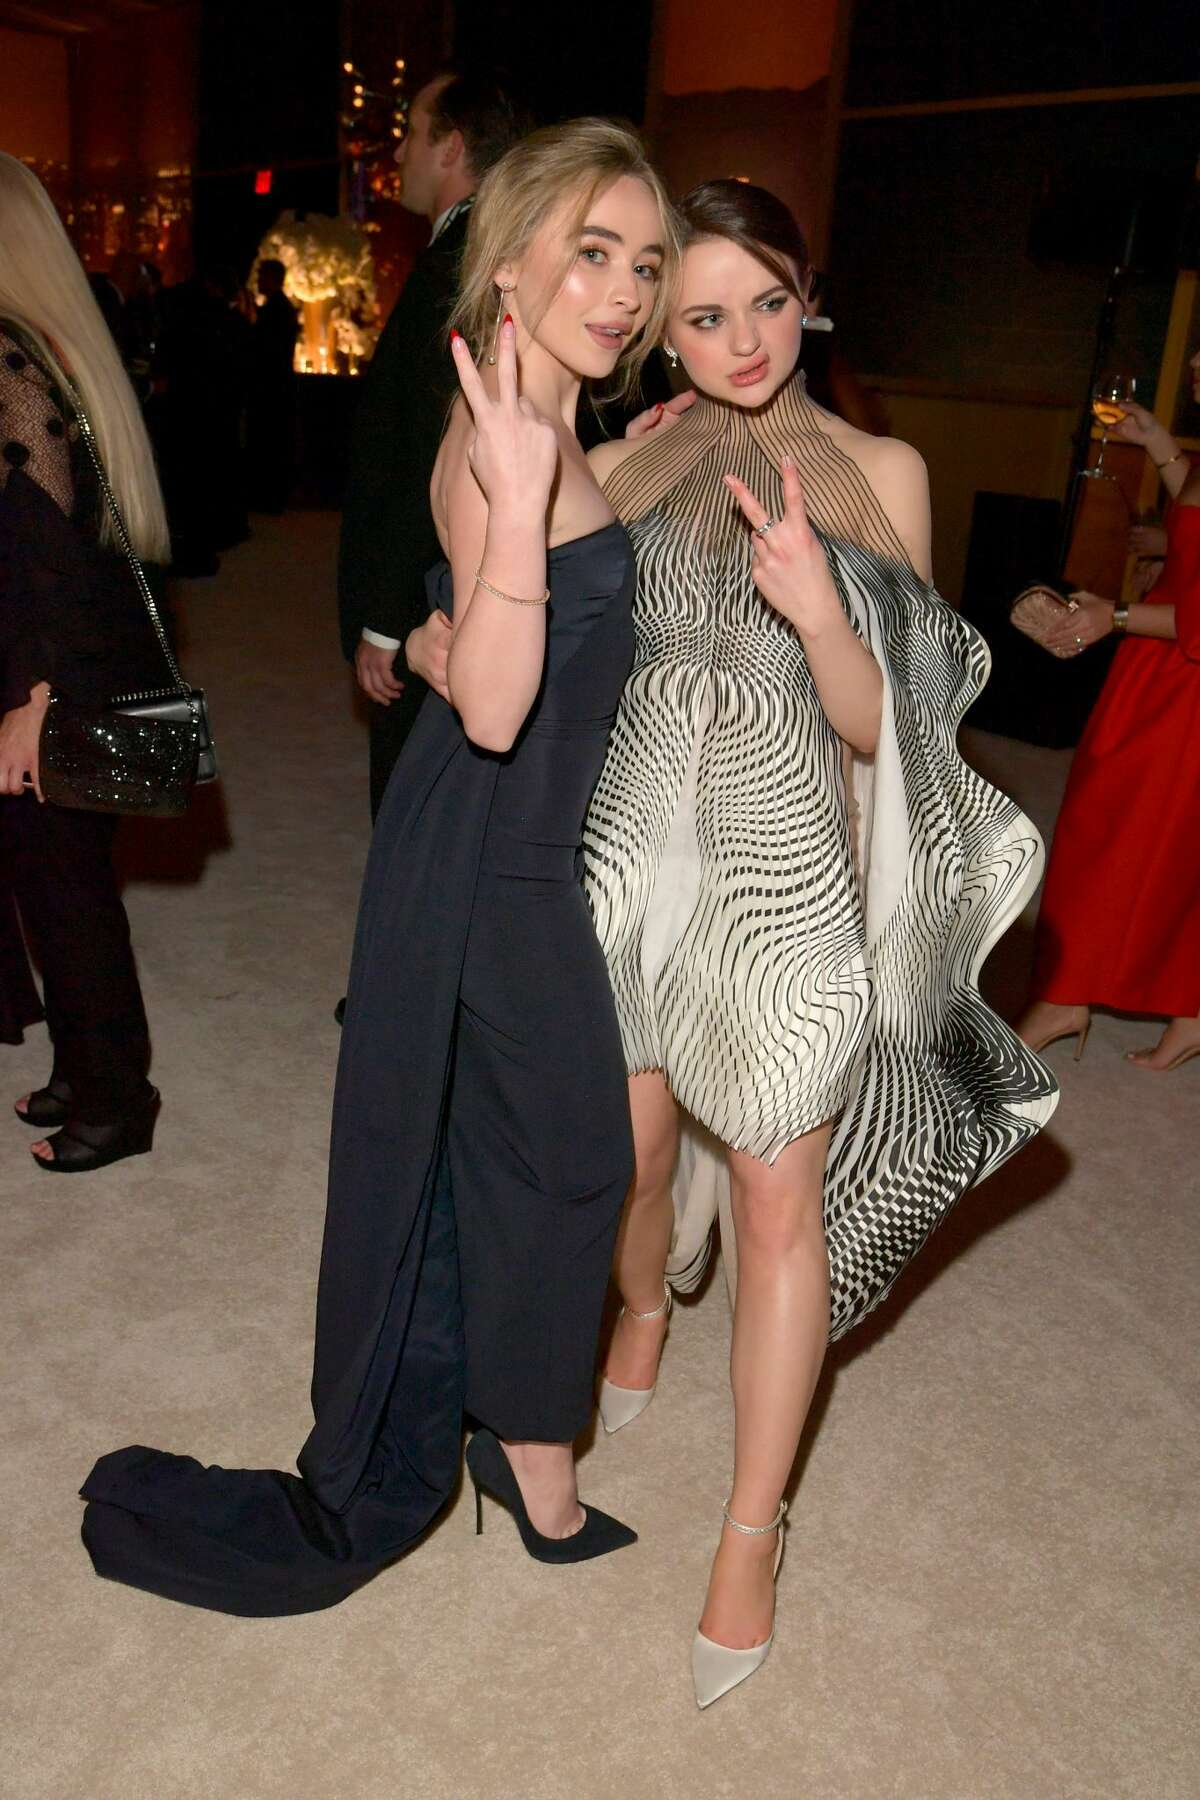 (L-R) Sabrina Carpenter and Joey King attend The 2020 InStyle And Warner Bros. 77th Annual Golden Globe Awards Post-Party at The Beverly Hilton Hotel on January 05, 2020 in Beverly Hills, California. (Photo by Lester Cohen/Getty Images for InStyle)